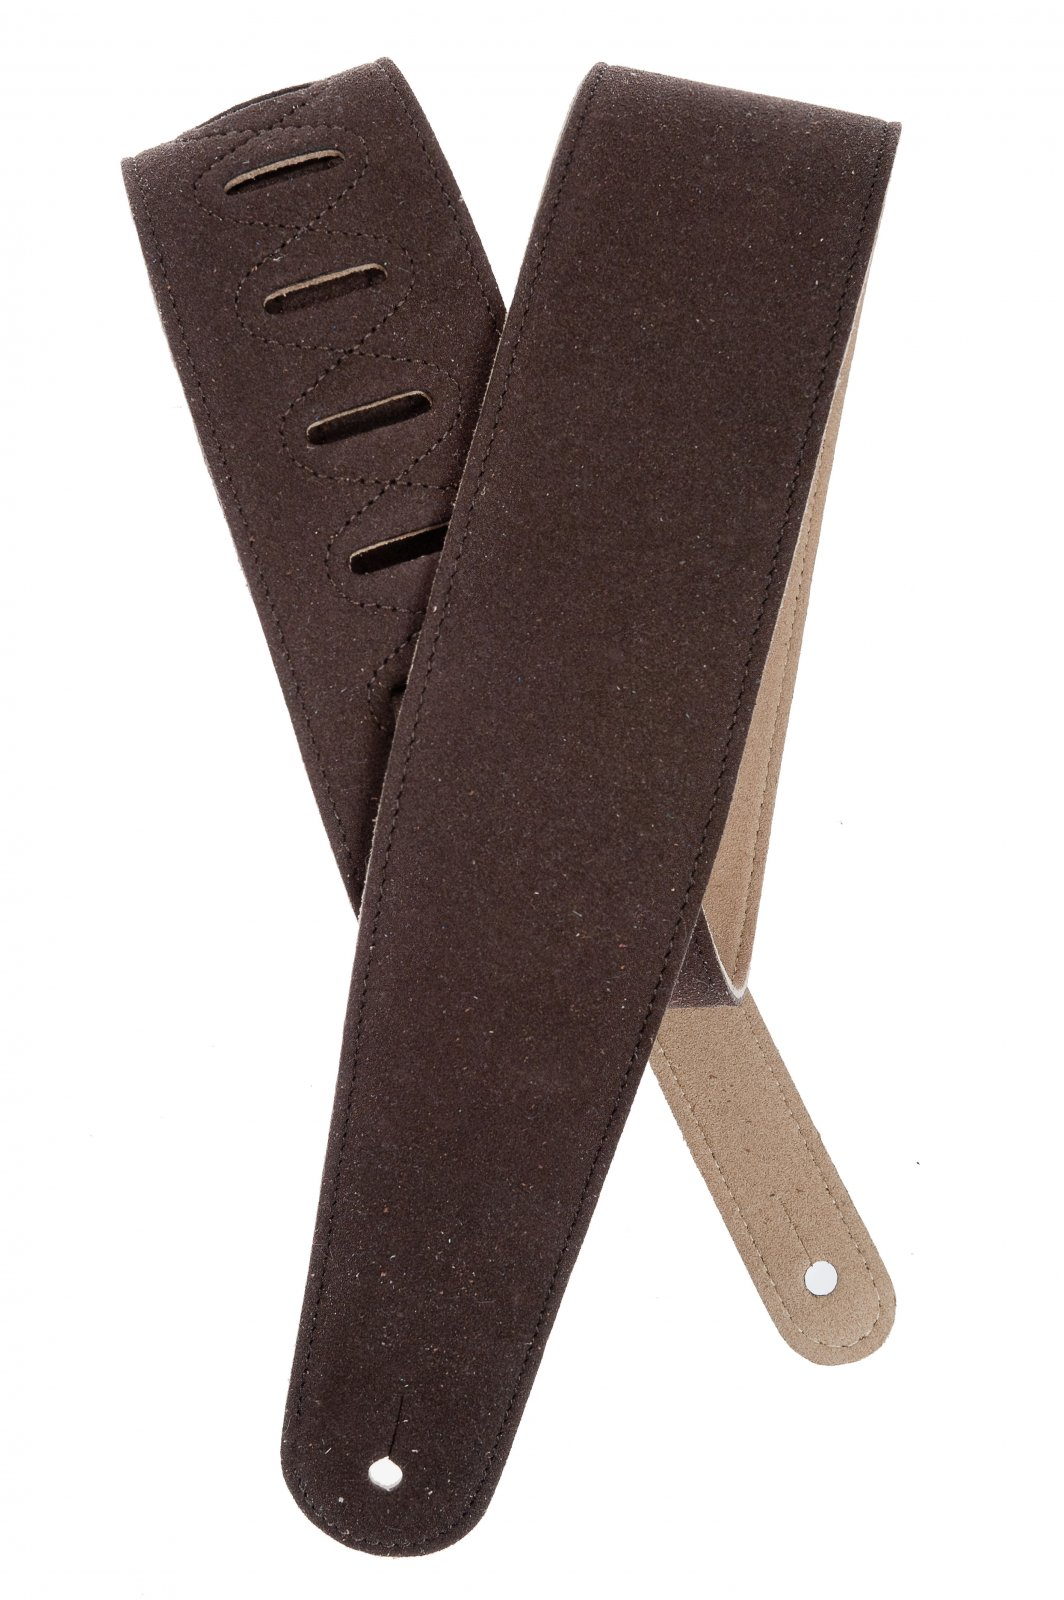 D'Addario / Planet Waves Suede Guitar Strap Cognac 25SS01-DX